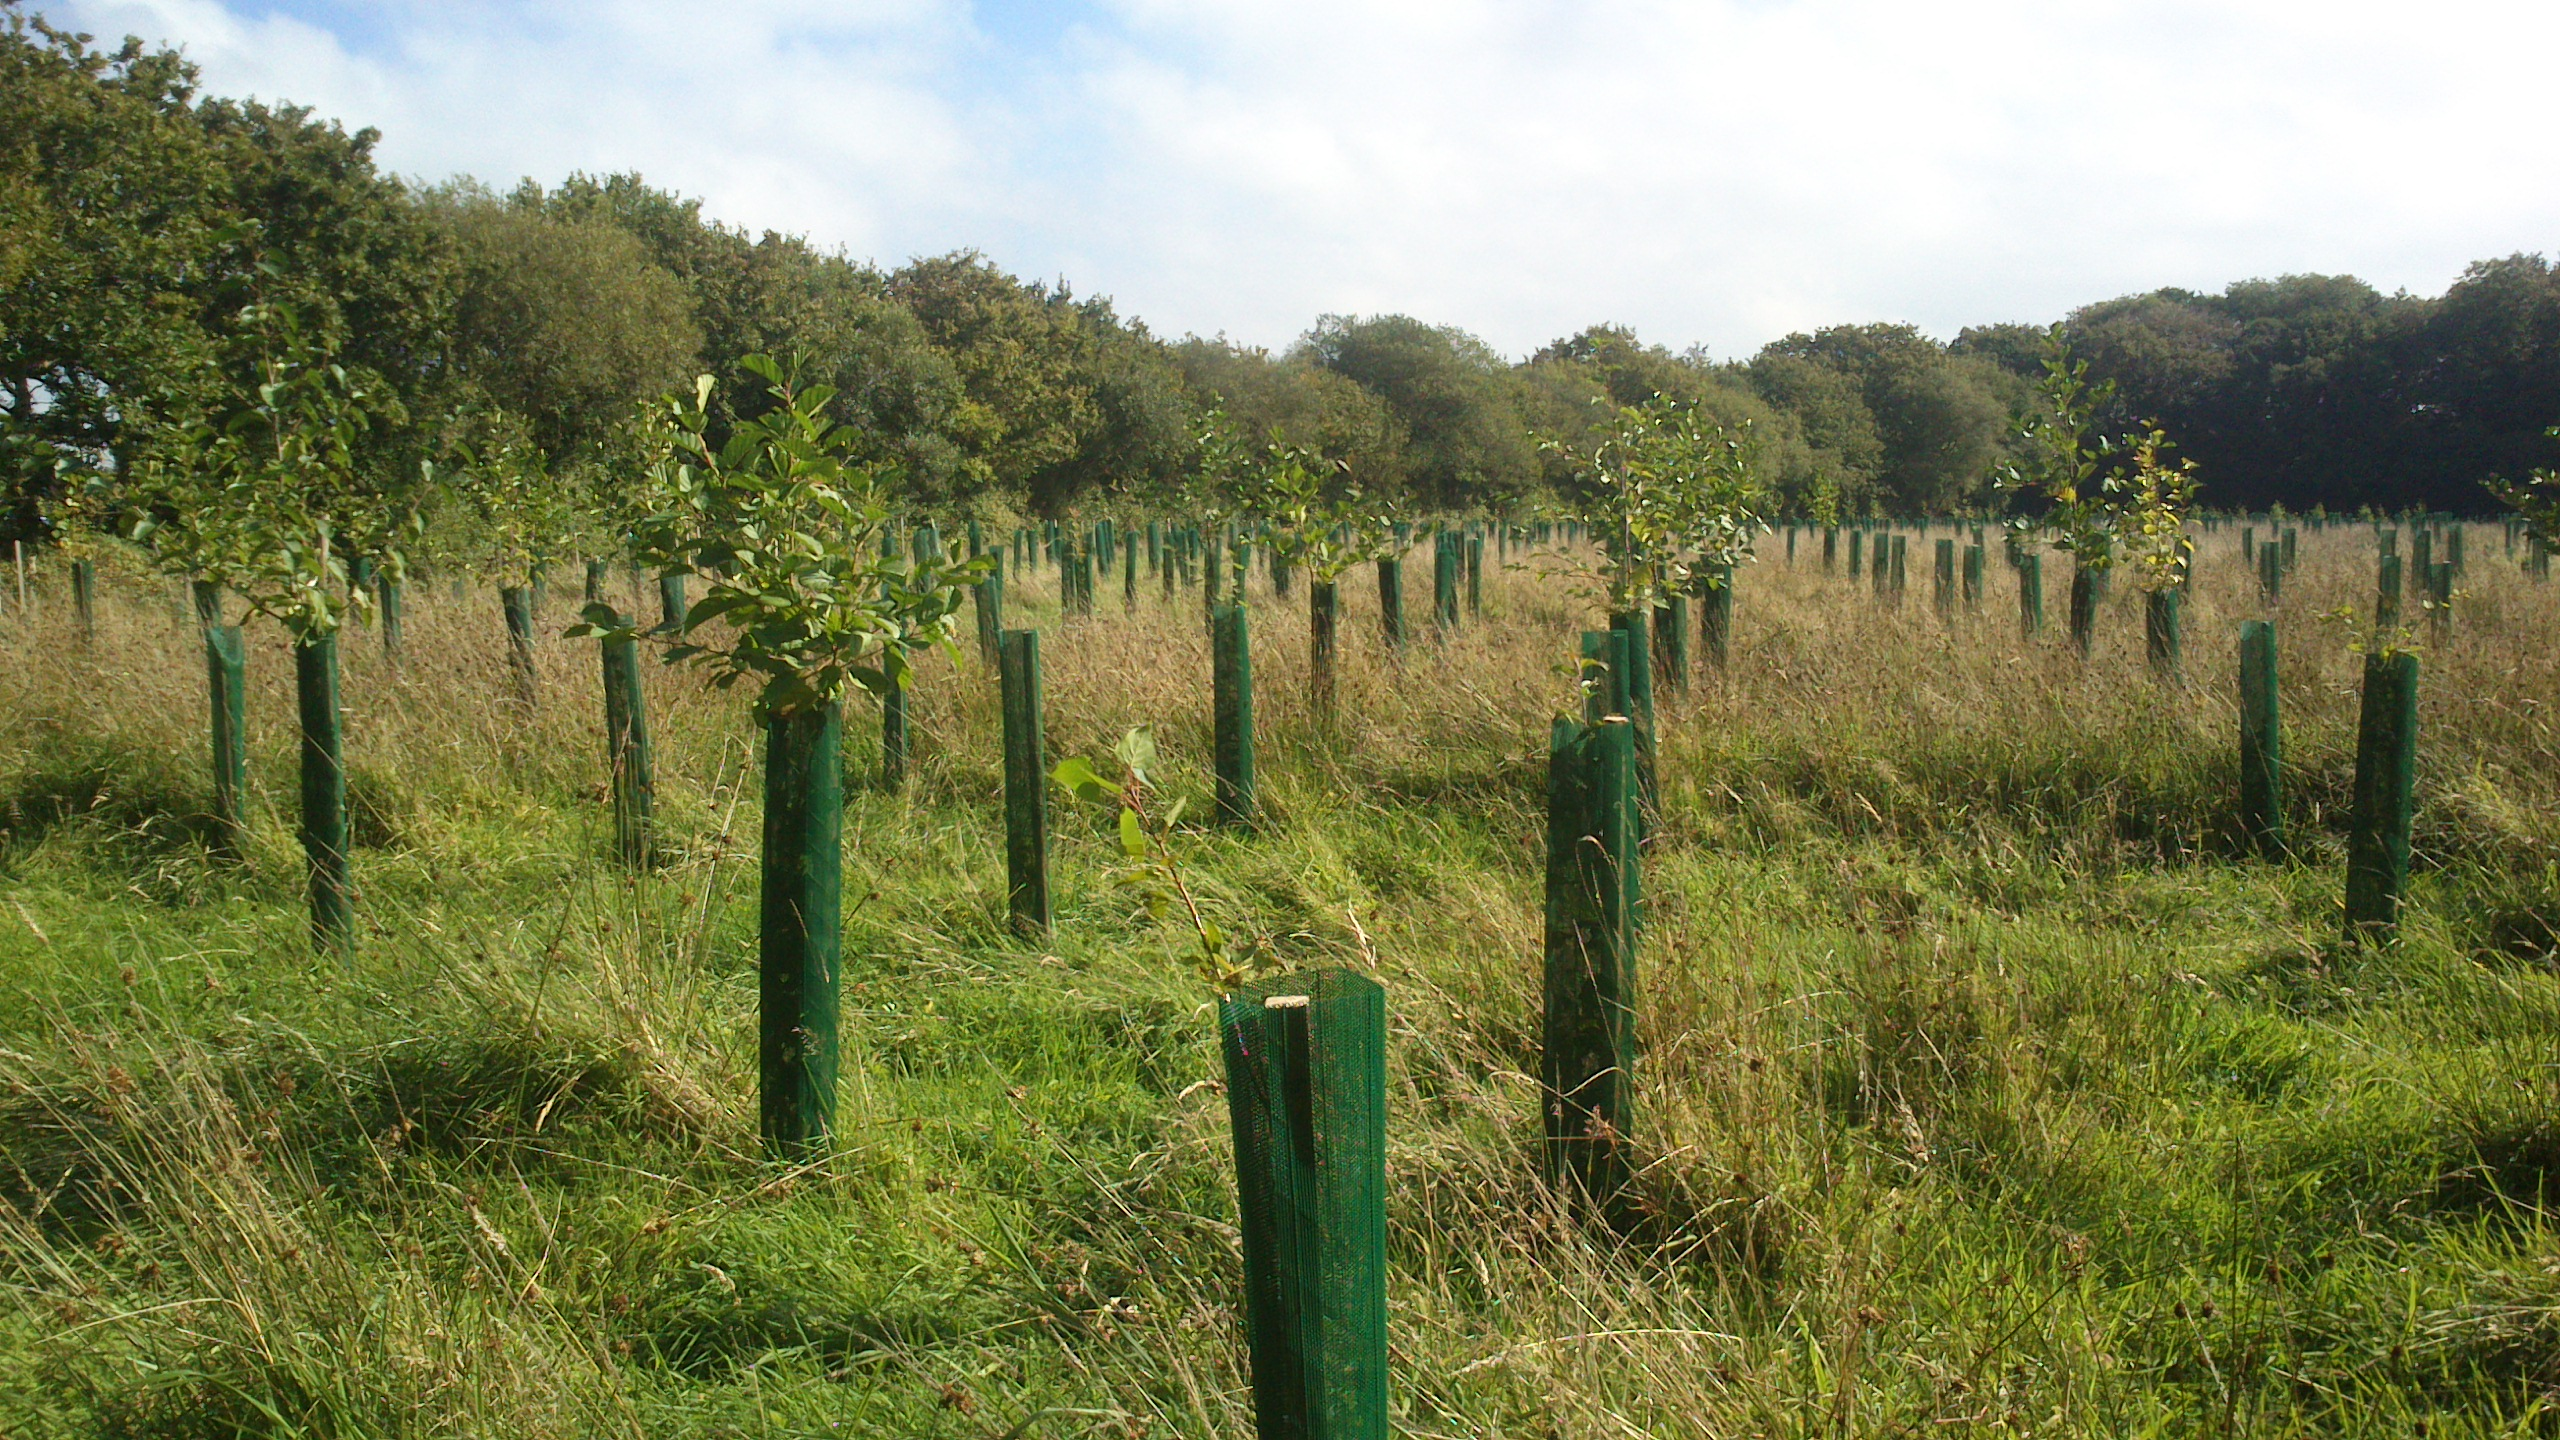 New Woodland Planting near Petrockstowe, Devon